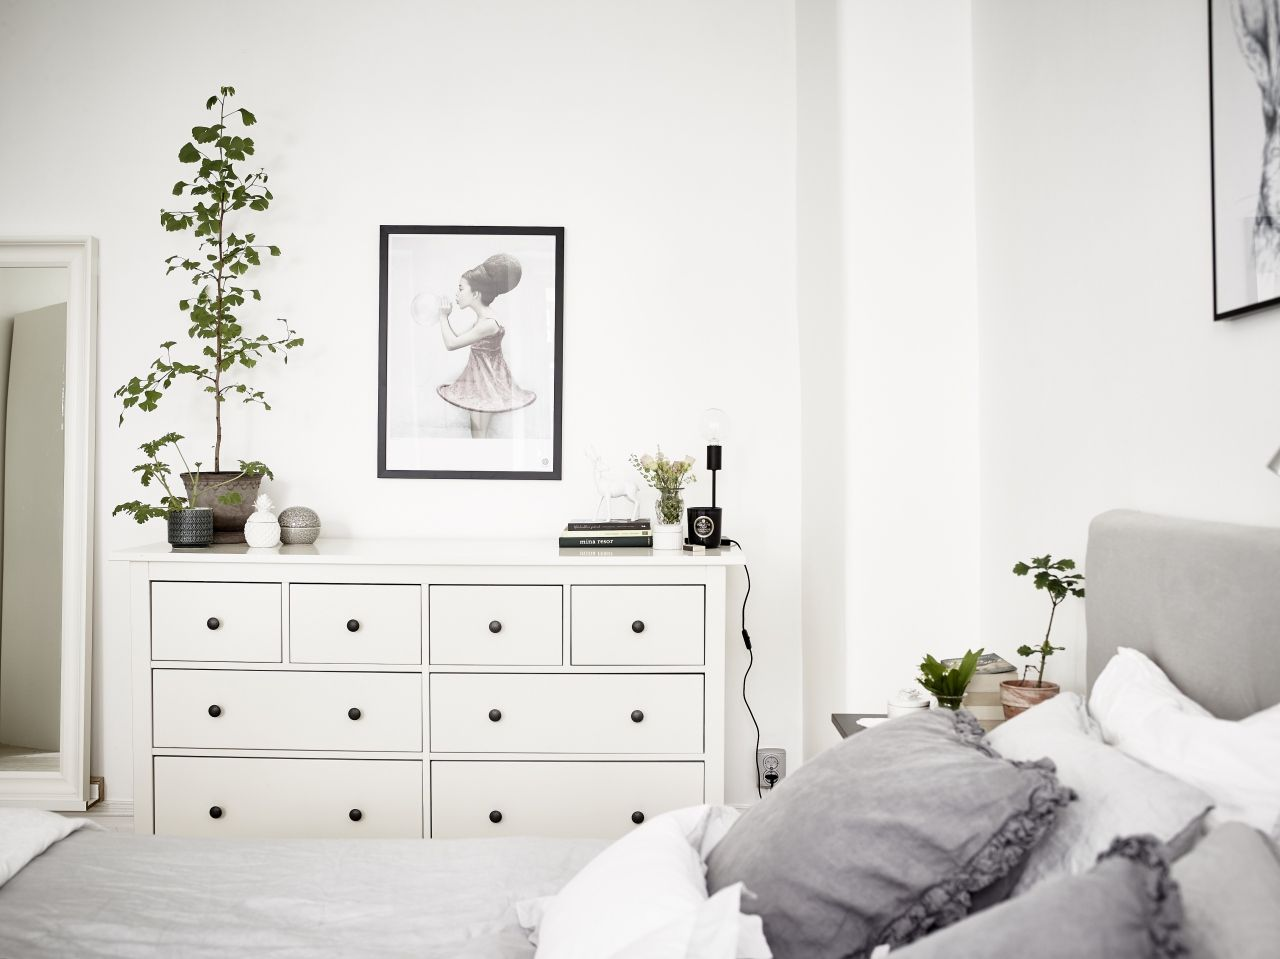 12 Best Ikea Interior Design Finds Habitat Ikea Bedroom Scandinavian Bedroom Ikea Interior